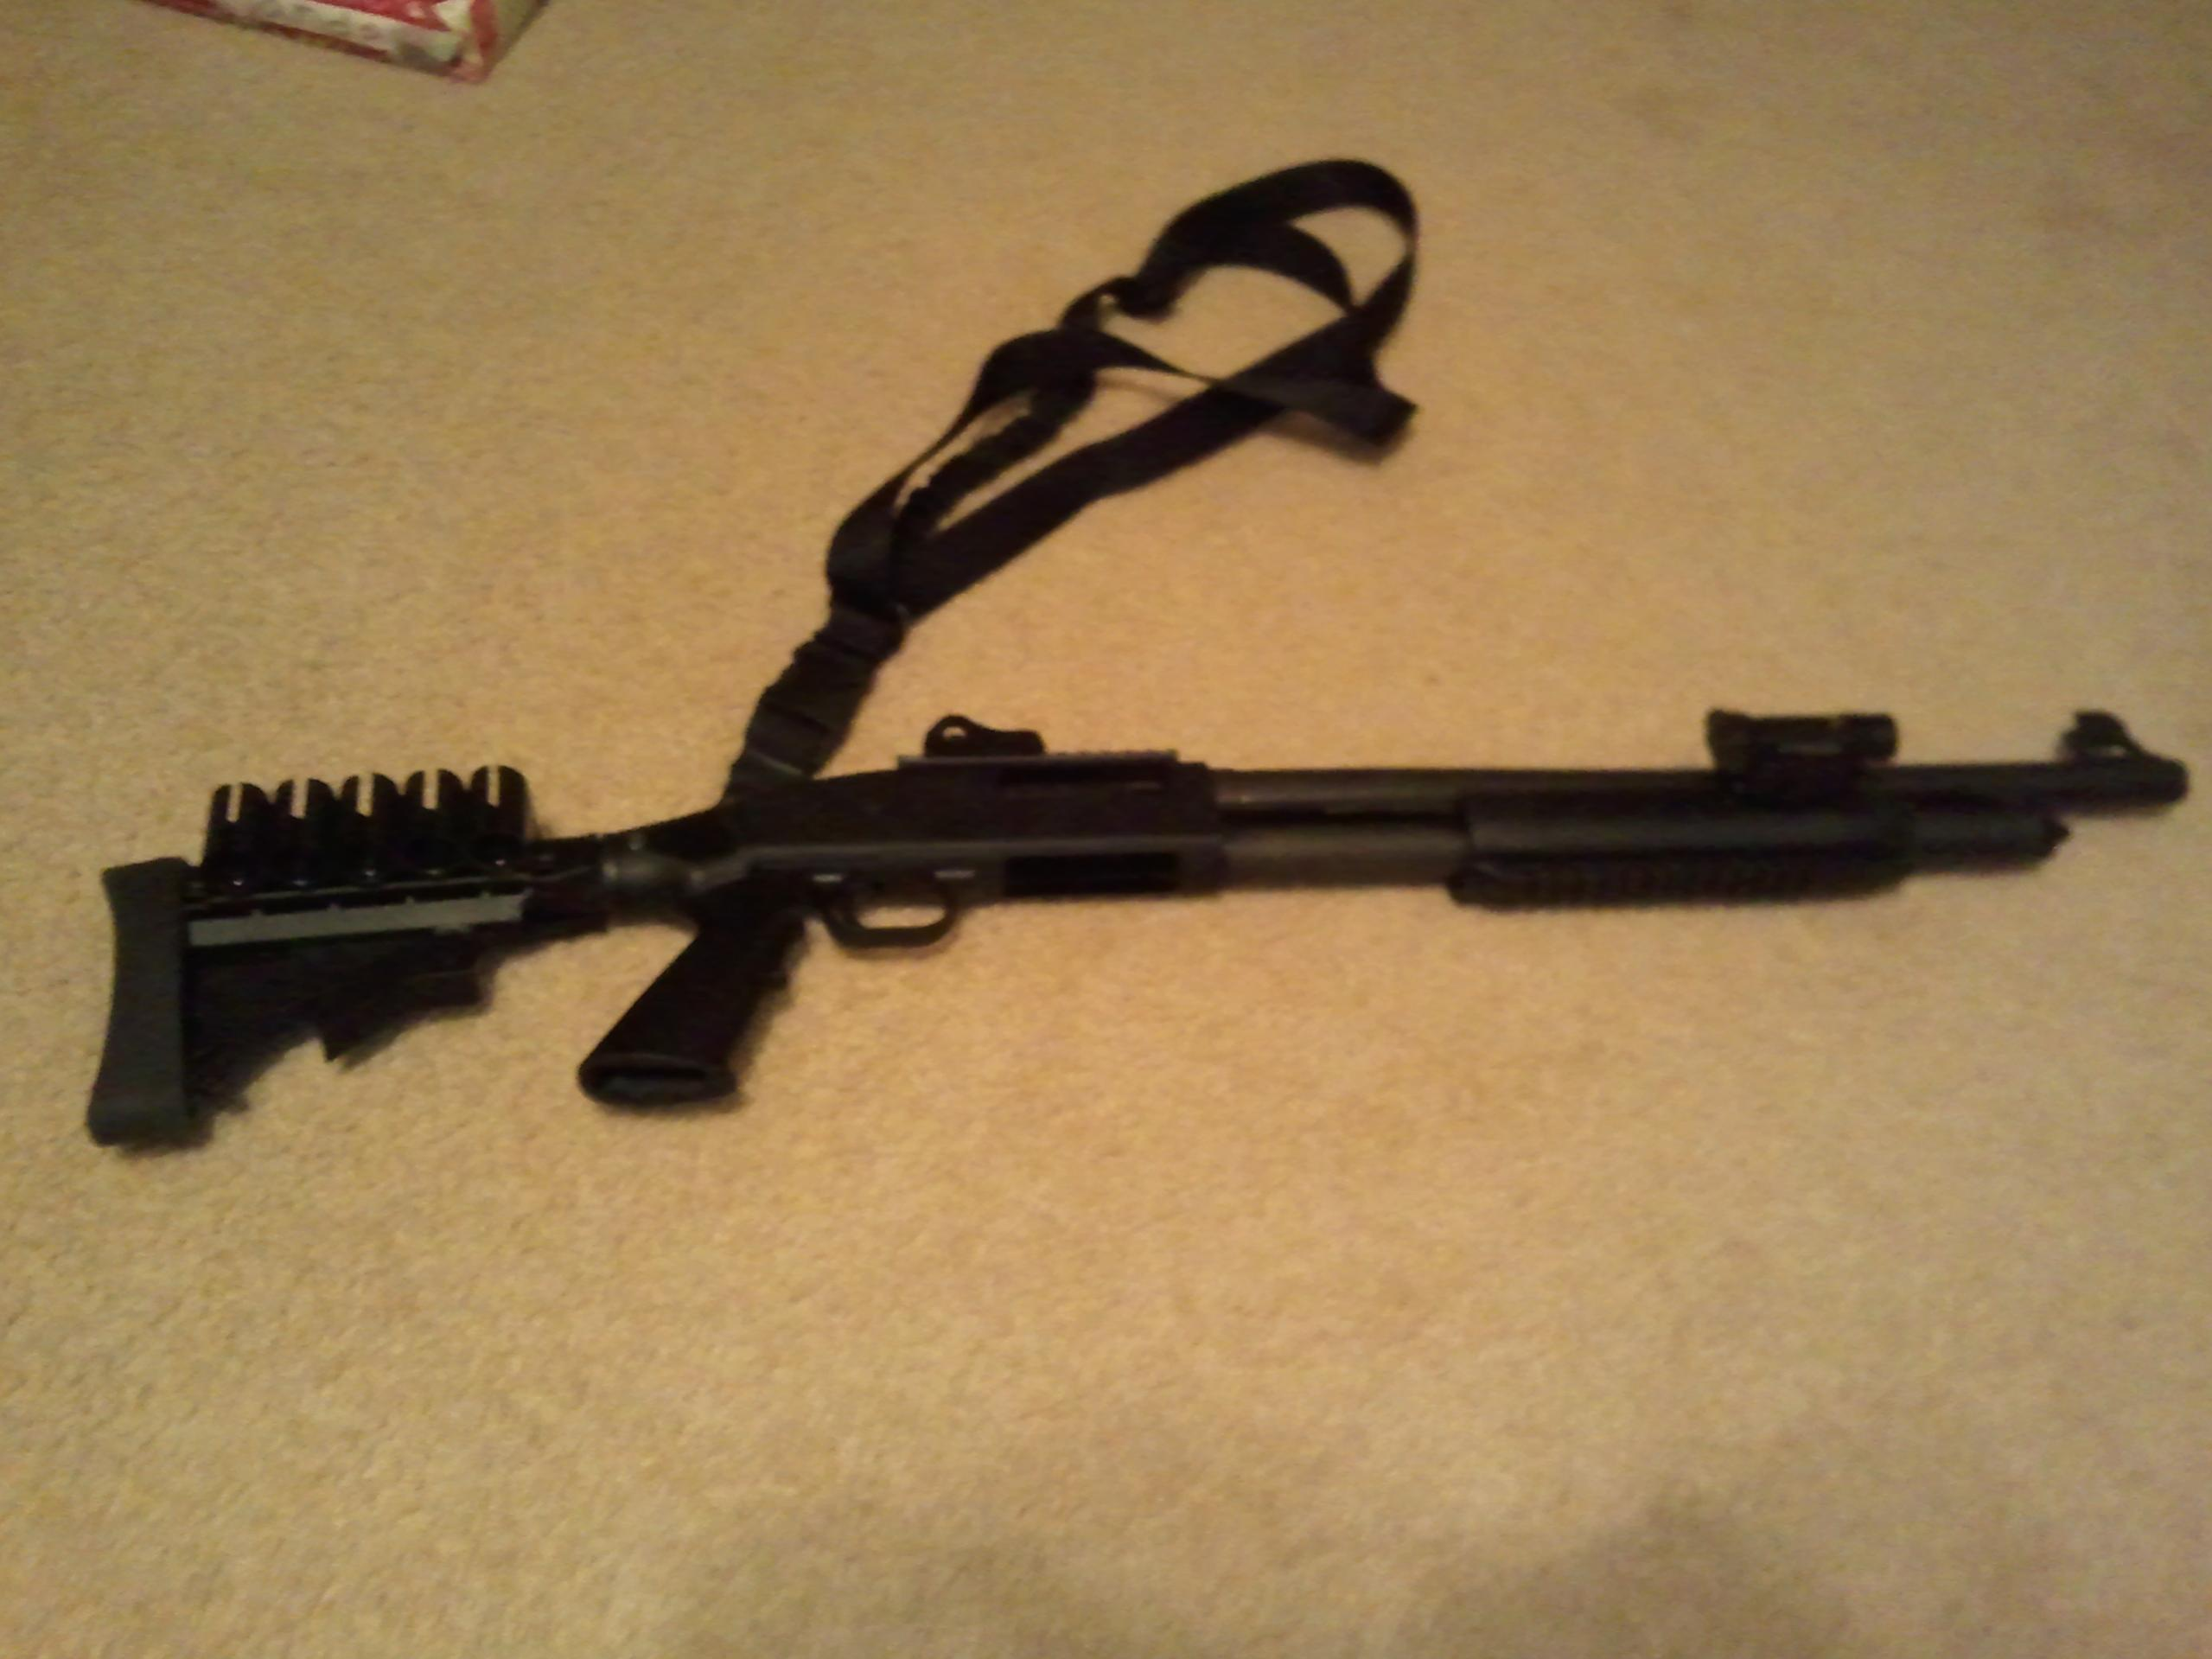 Adding picatinny rail to a stock Mossberg foregrip. Help!-2011-12-15_16.45.27.jpg